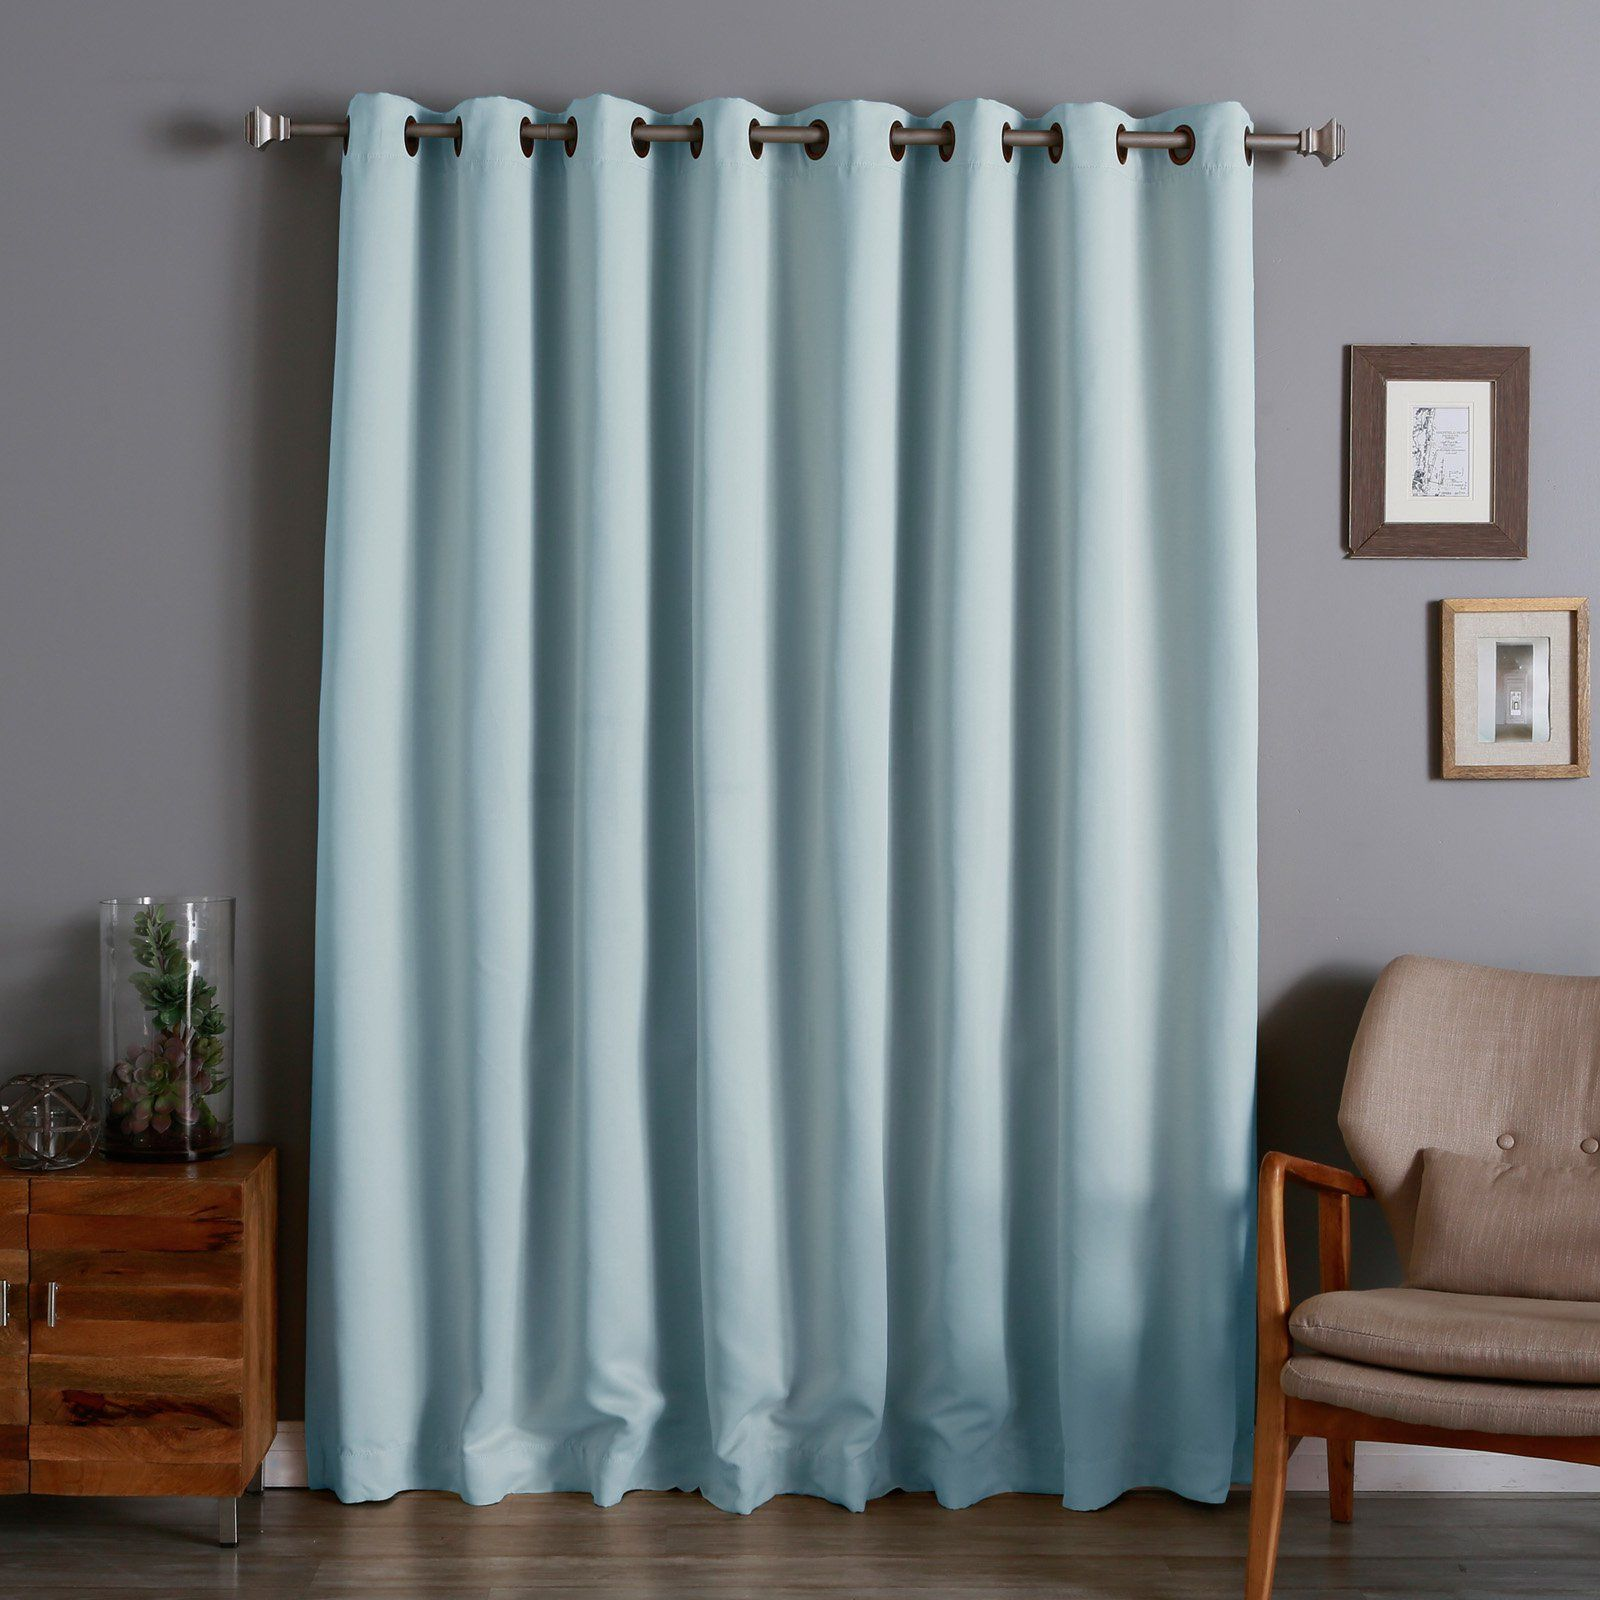 Best Home Fashion Wide Thermal Grommet Blackout Curtain Royal Blue Size 100 X 84 Blackout Curtains Curtains Panel Curtains